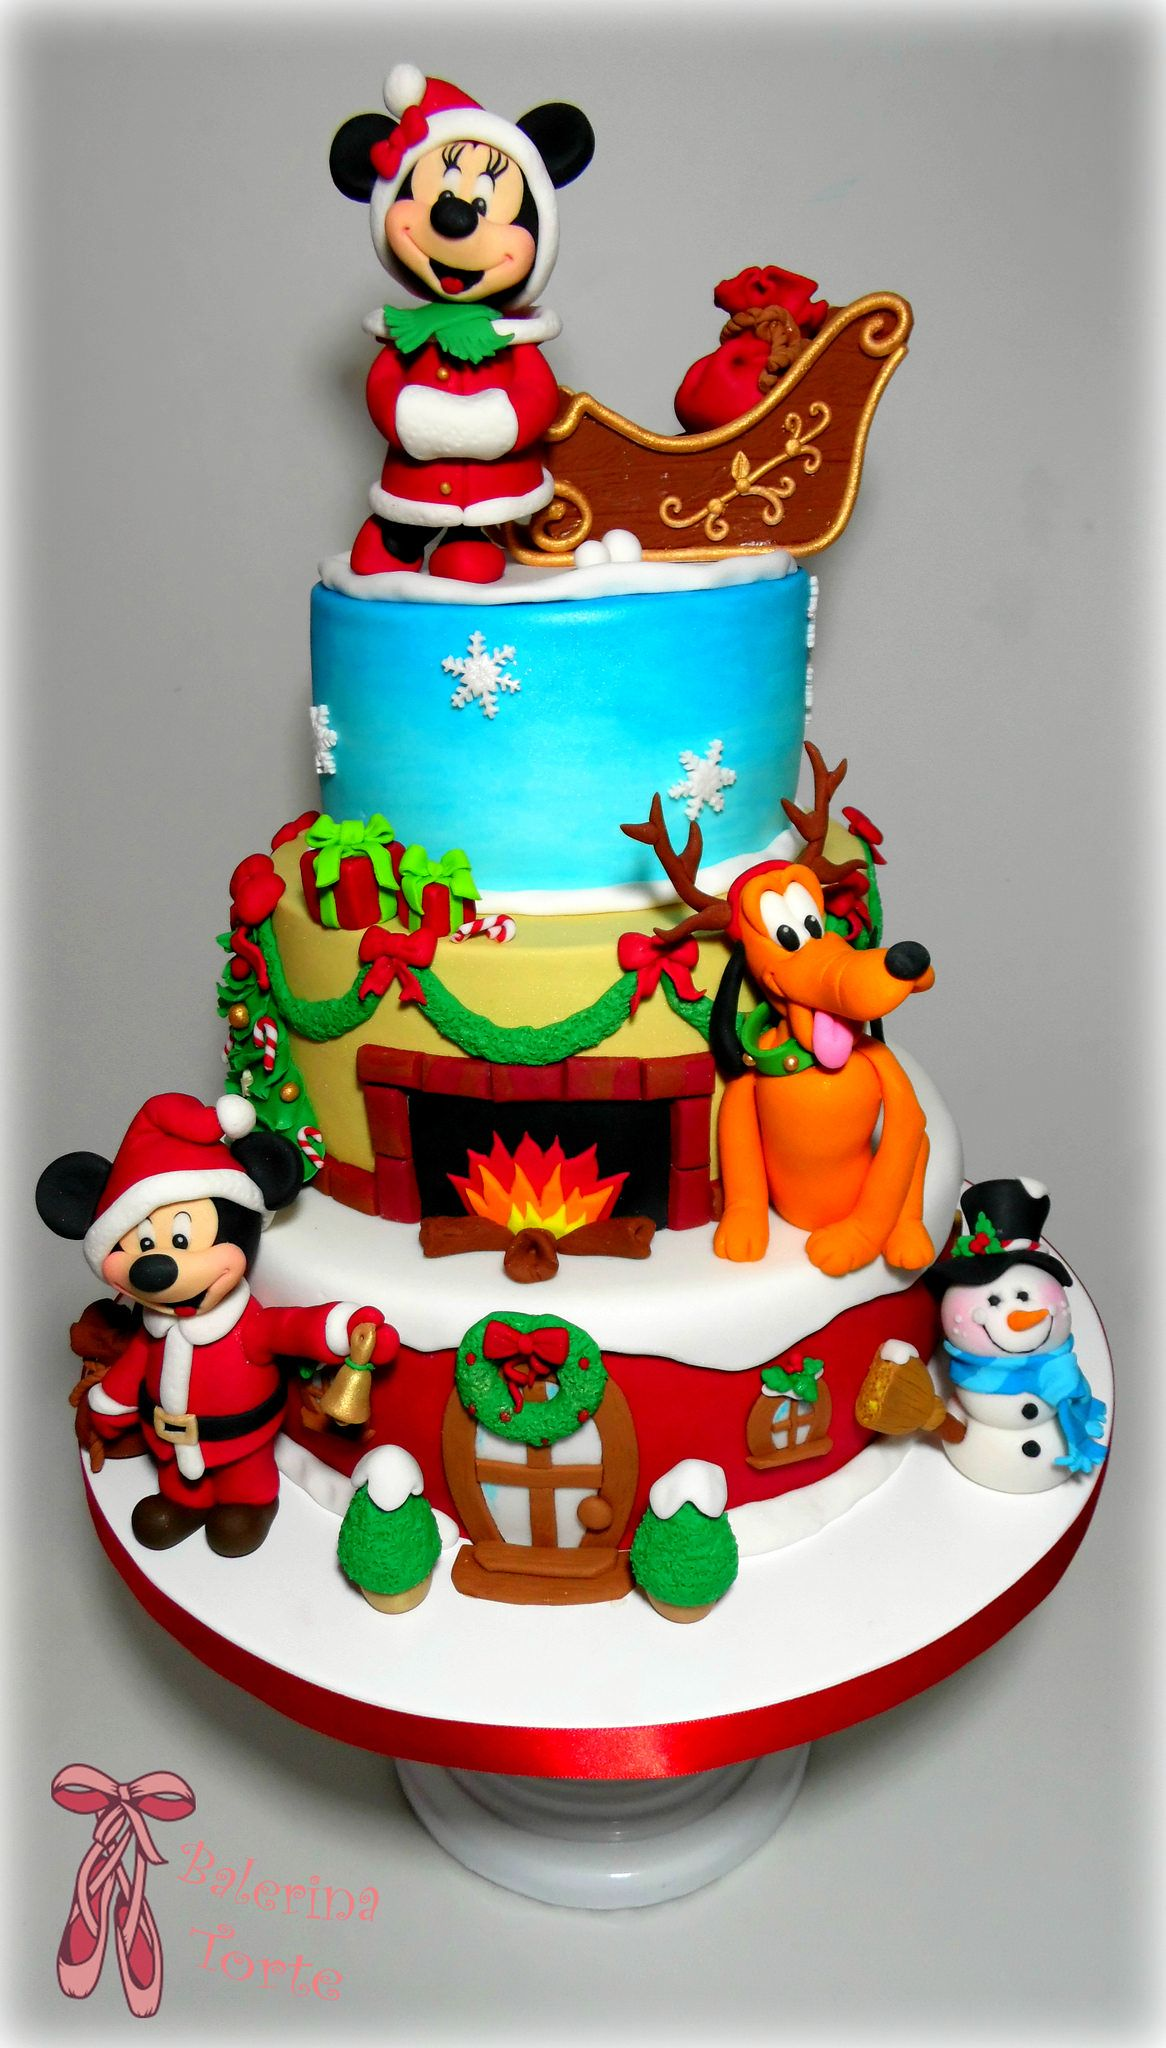 Disney Mickey and Minnie Mouse lovely Christmas cake